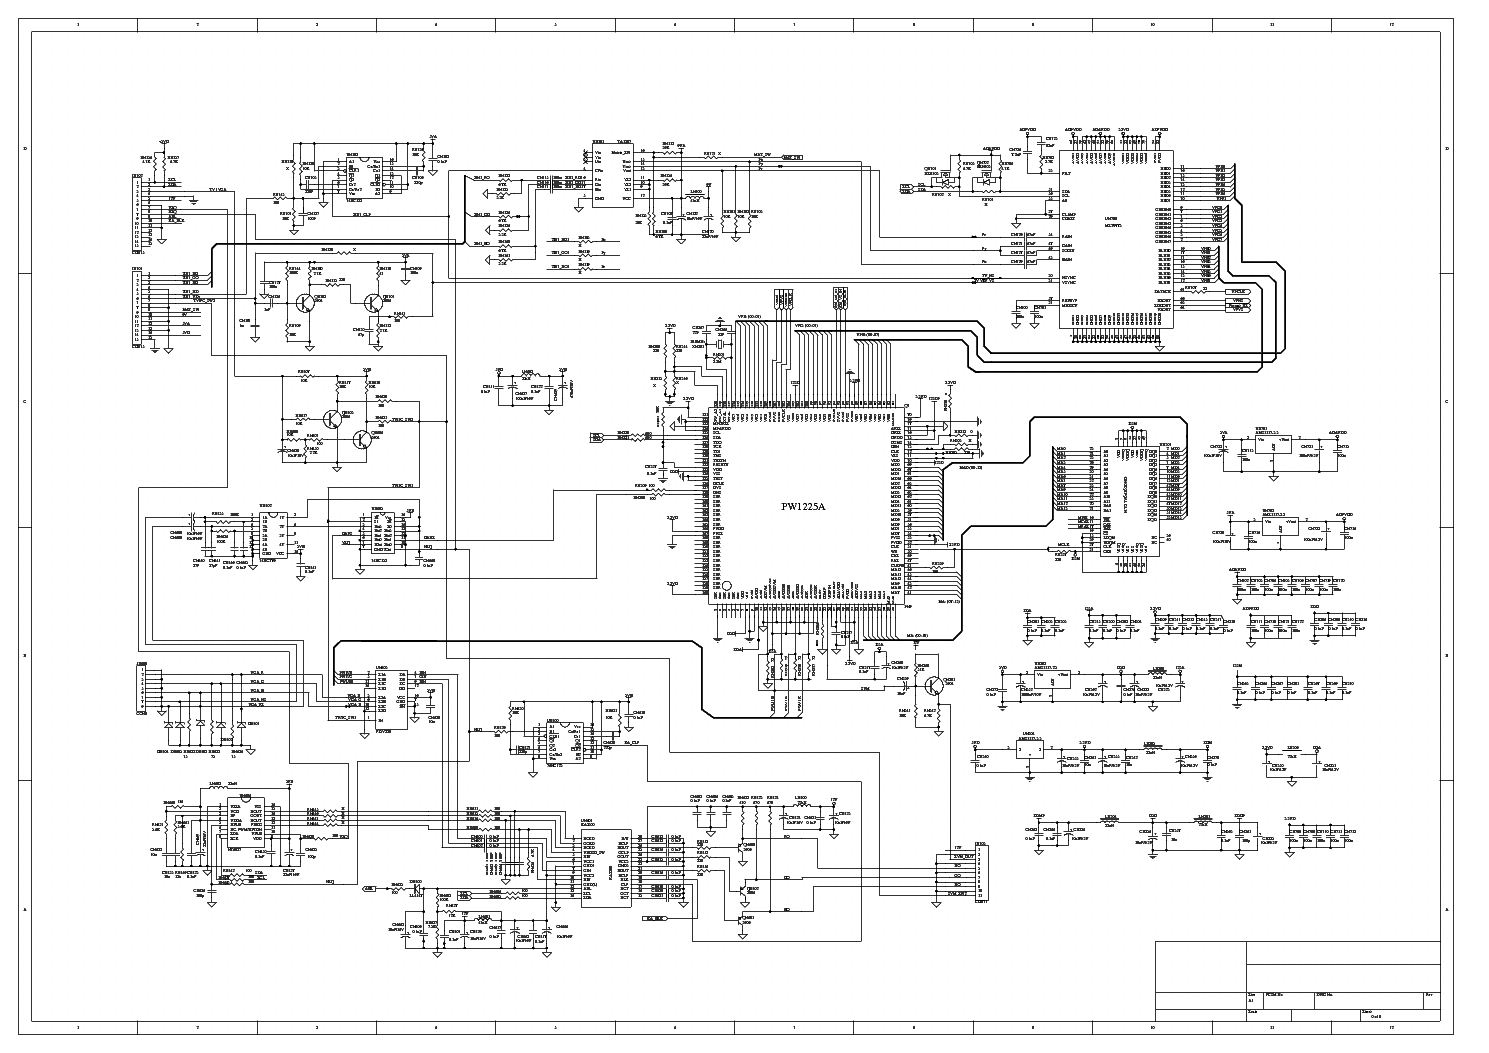 Tcl 21e12 Rca 14f512t Chassis M123sp Sch Service Manual Download  Schematics  Eeprom  Repair